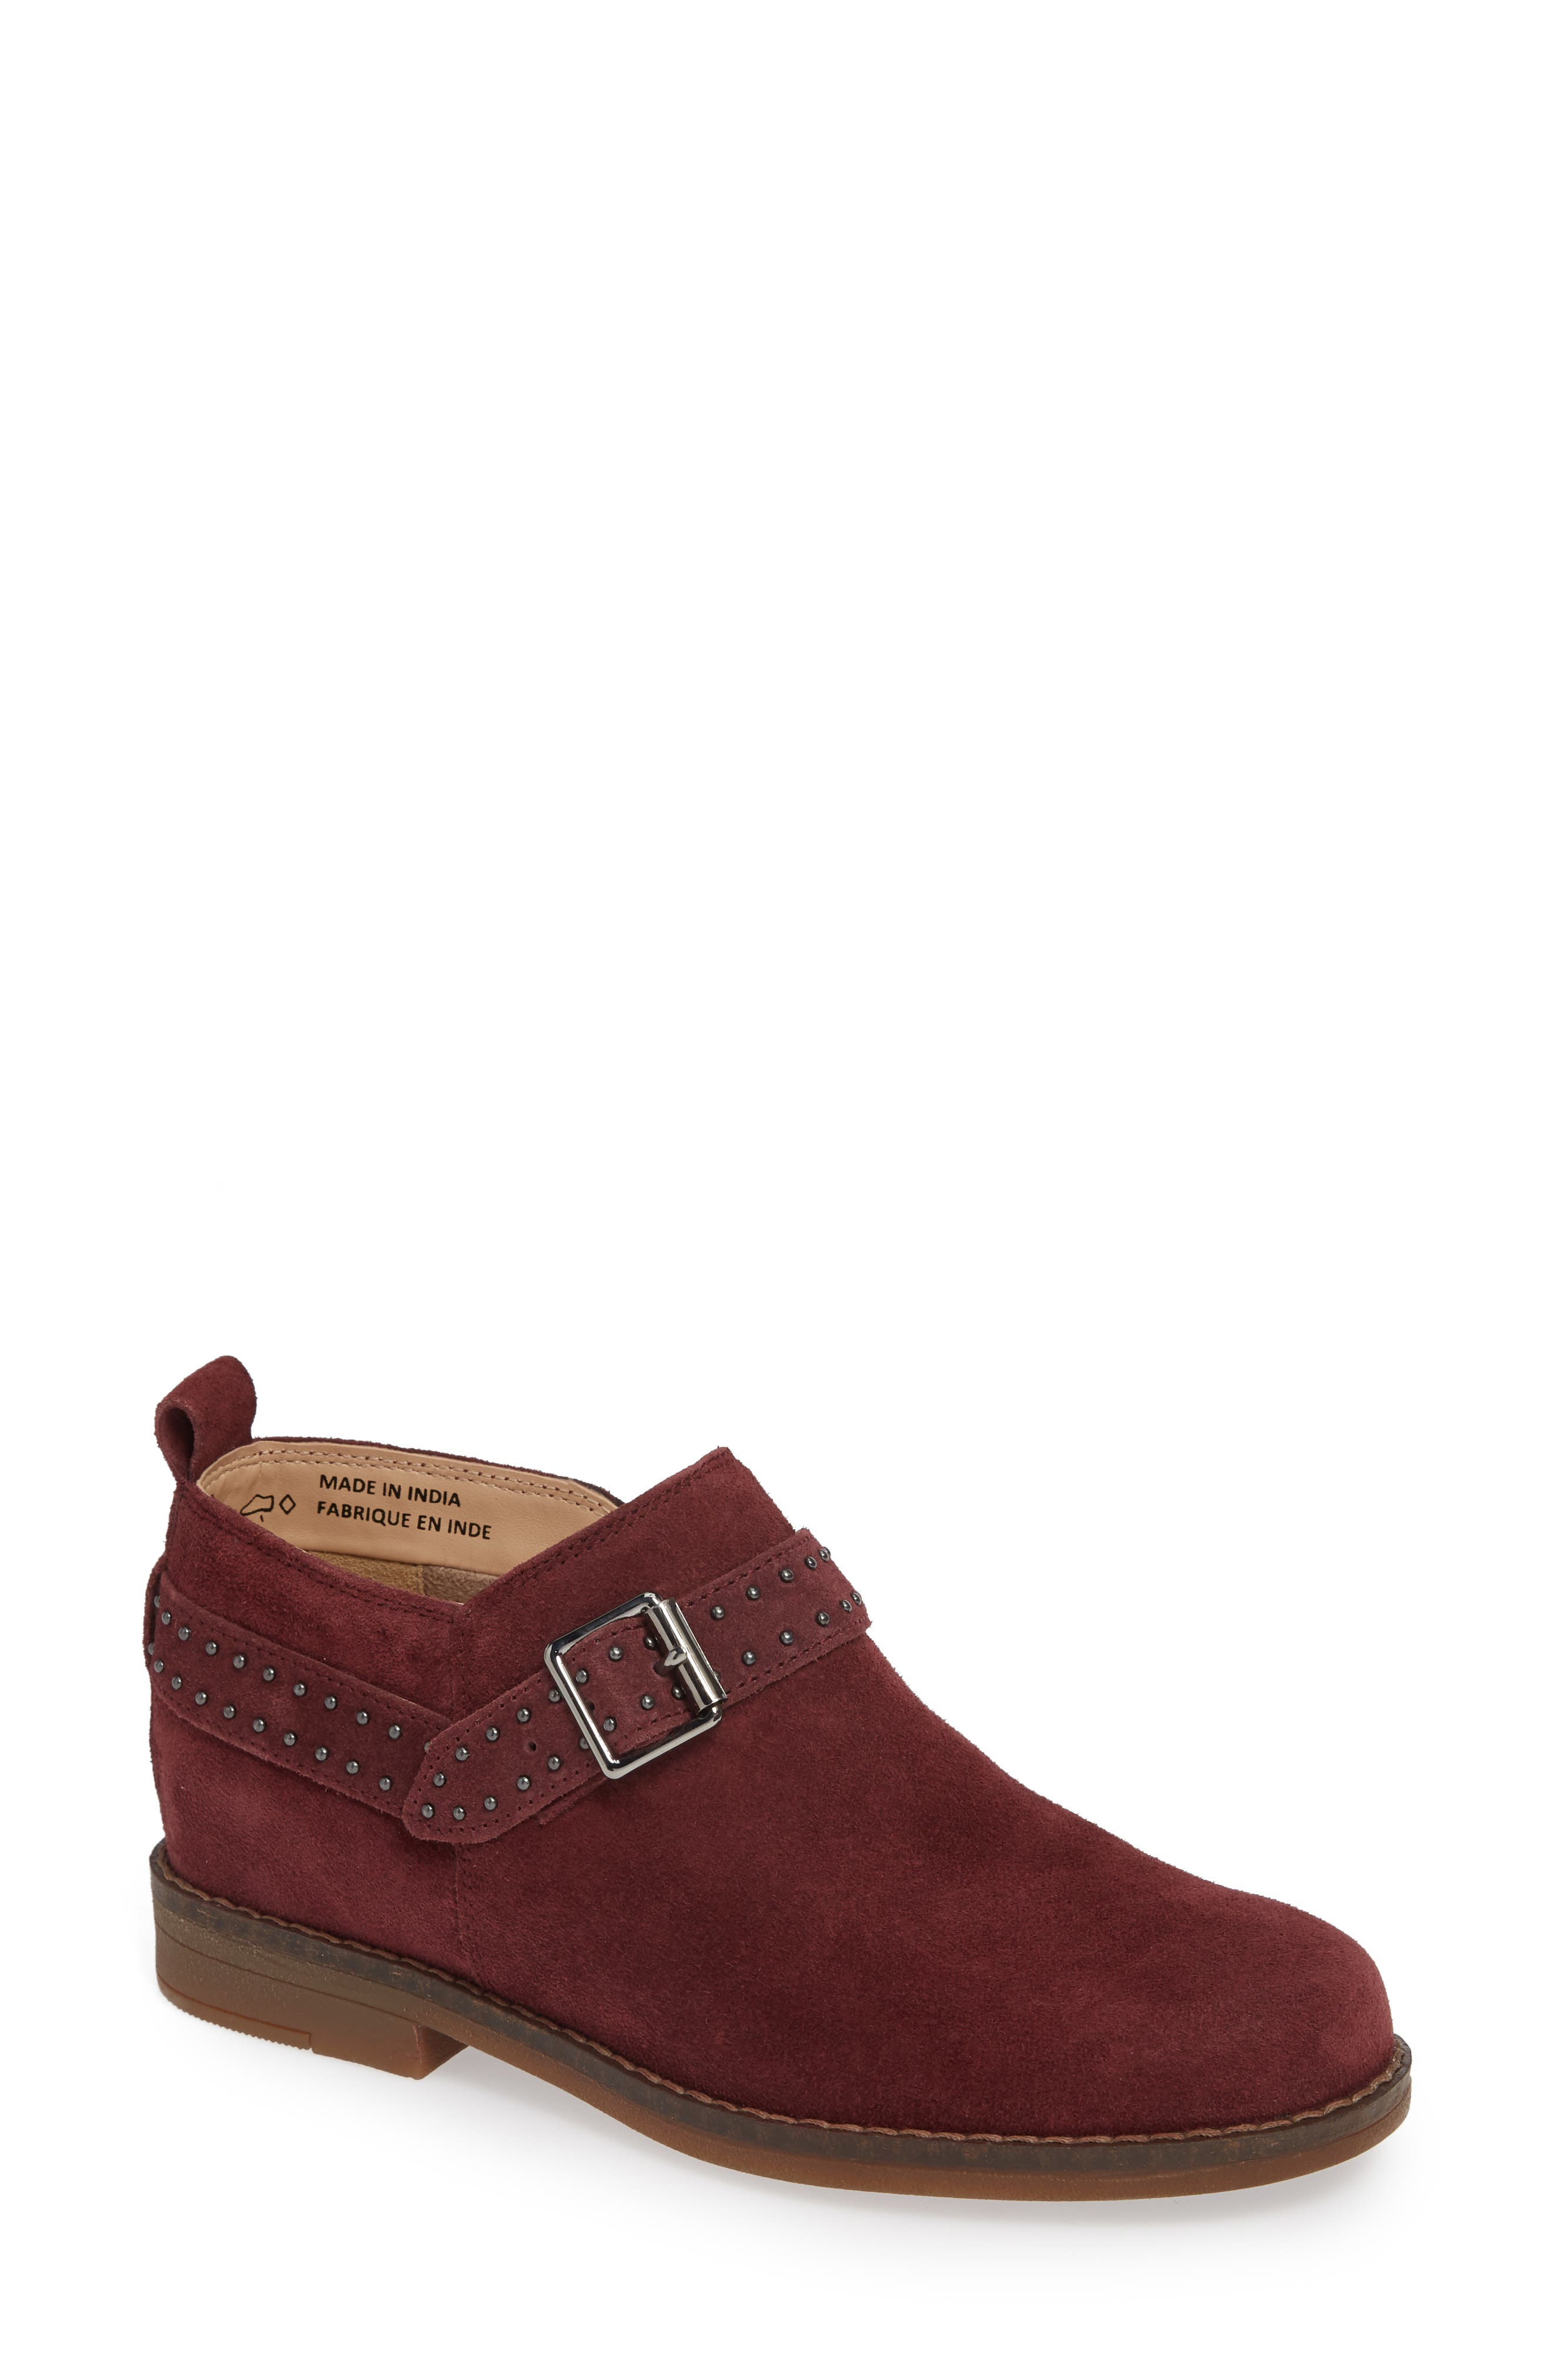 Hush Puppies Cayto Studded Belt Bootie- Burgundy